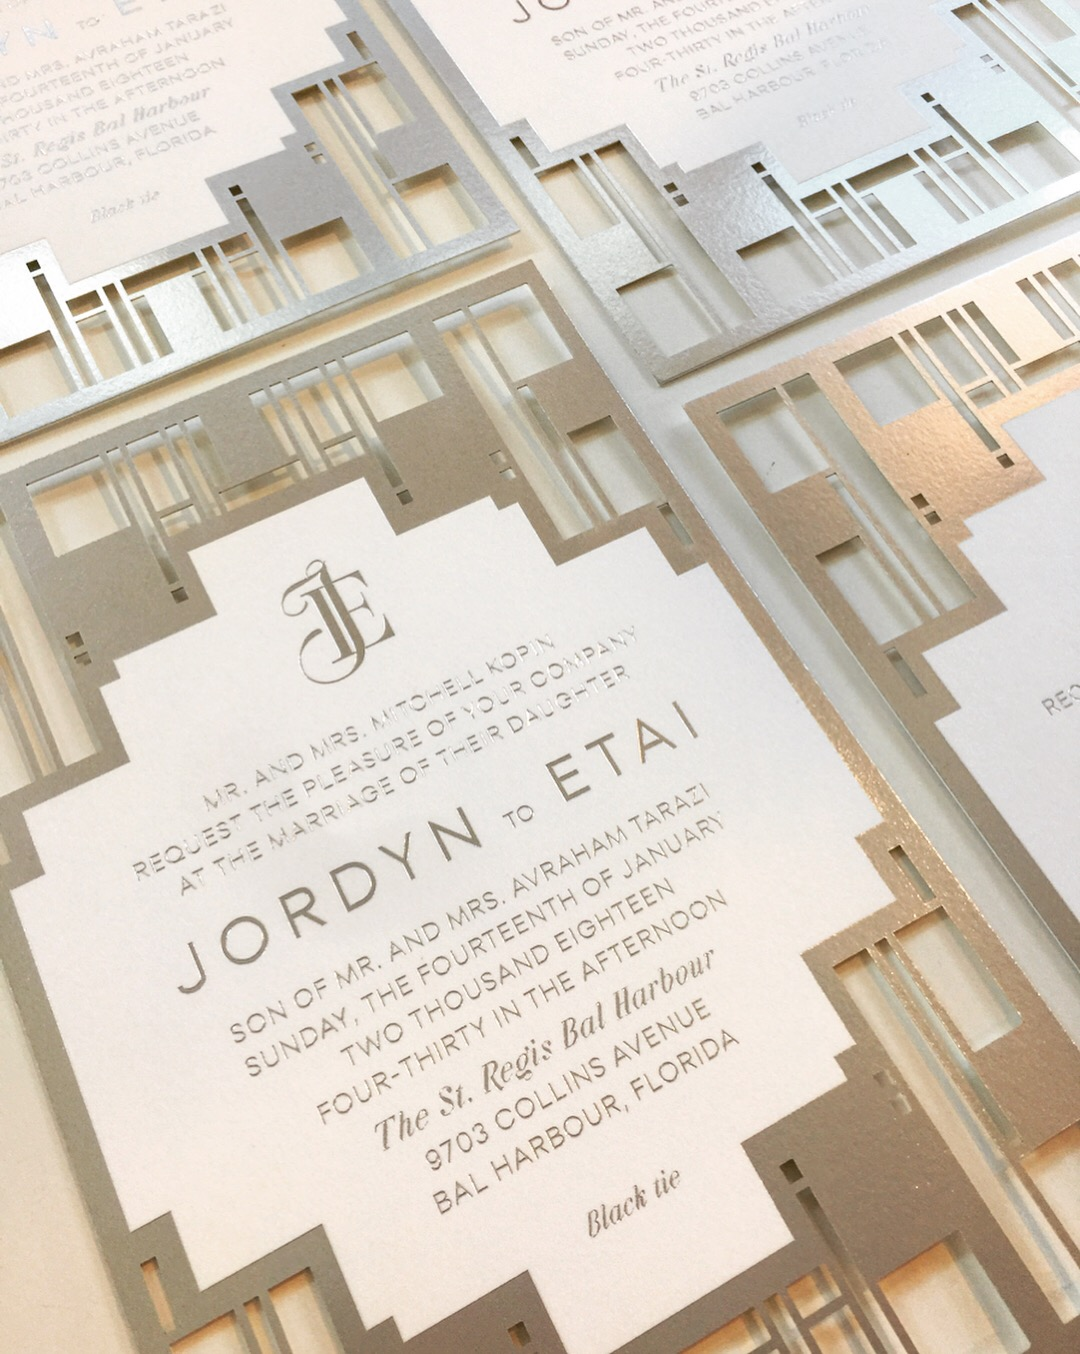 Jordyn &Etai  \\See what inspired the design of Jordyn and Etai's wedding invitations ...the iconic St. Regis Bal Harbour entrance! Congratulations on tying the knot yesterday you two.